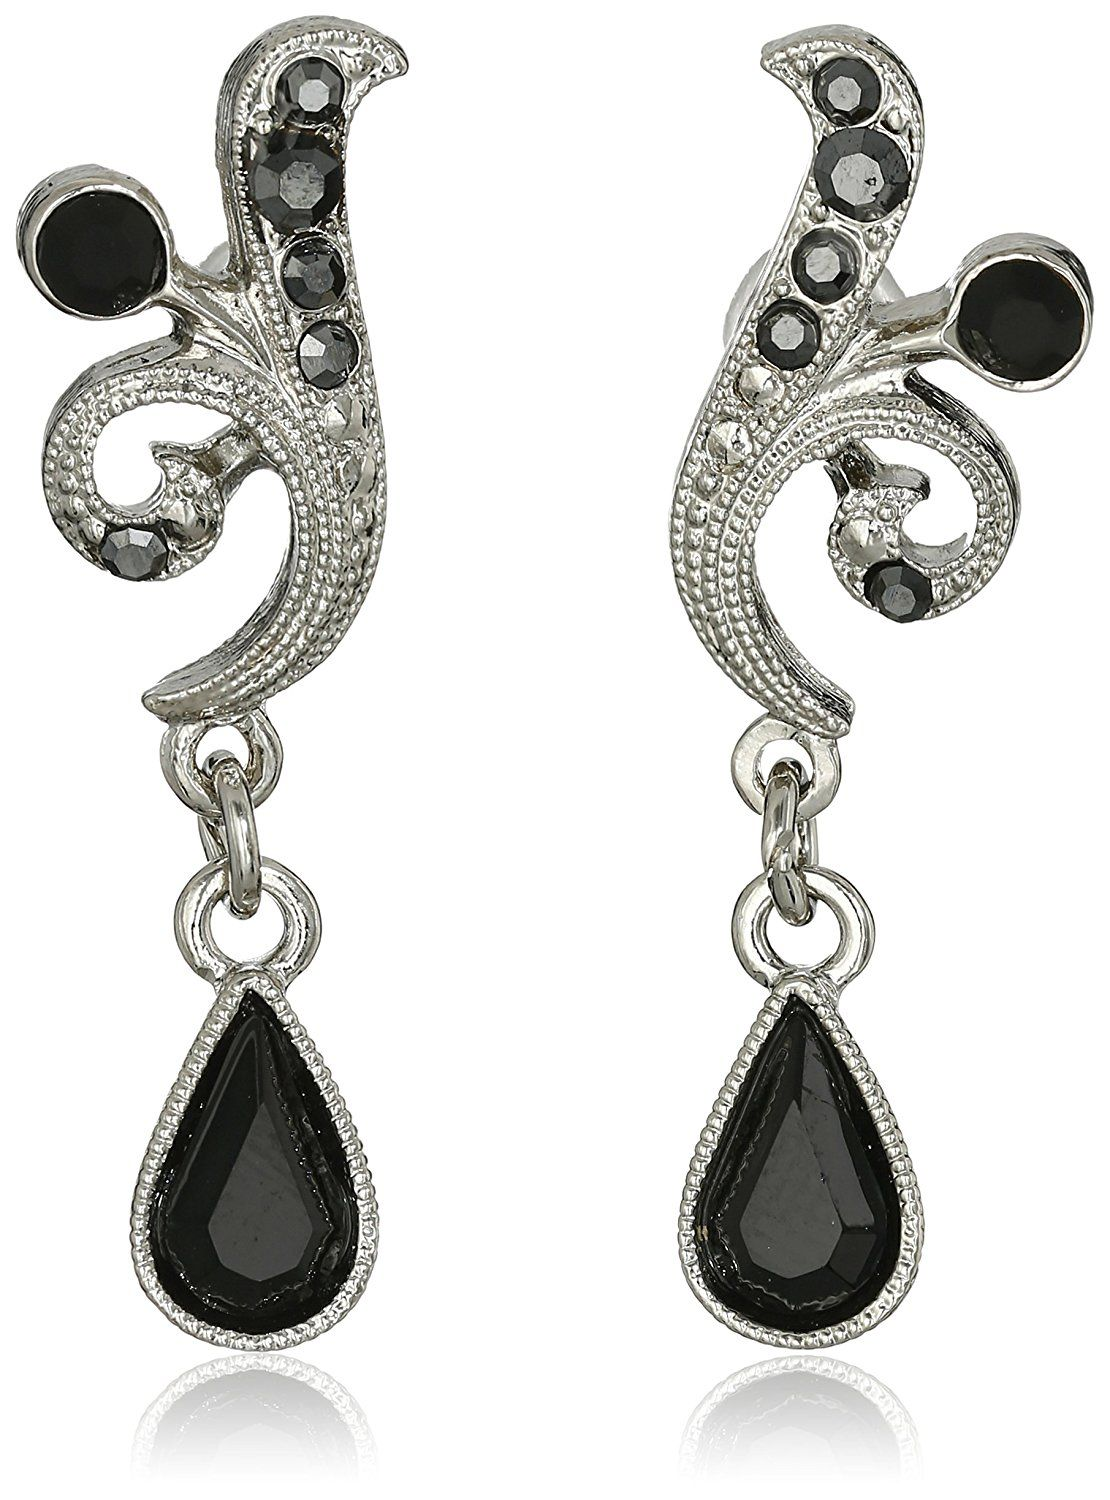 1920s Accessories 1928 Jewelry Silver Tone Black And Hemae Color Crystal Vine Drop Earrings 21 00